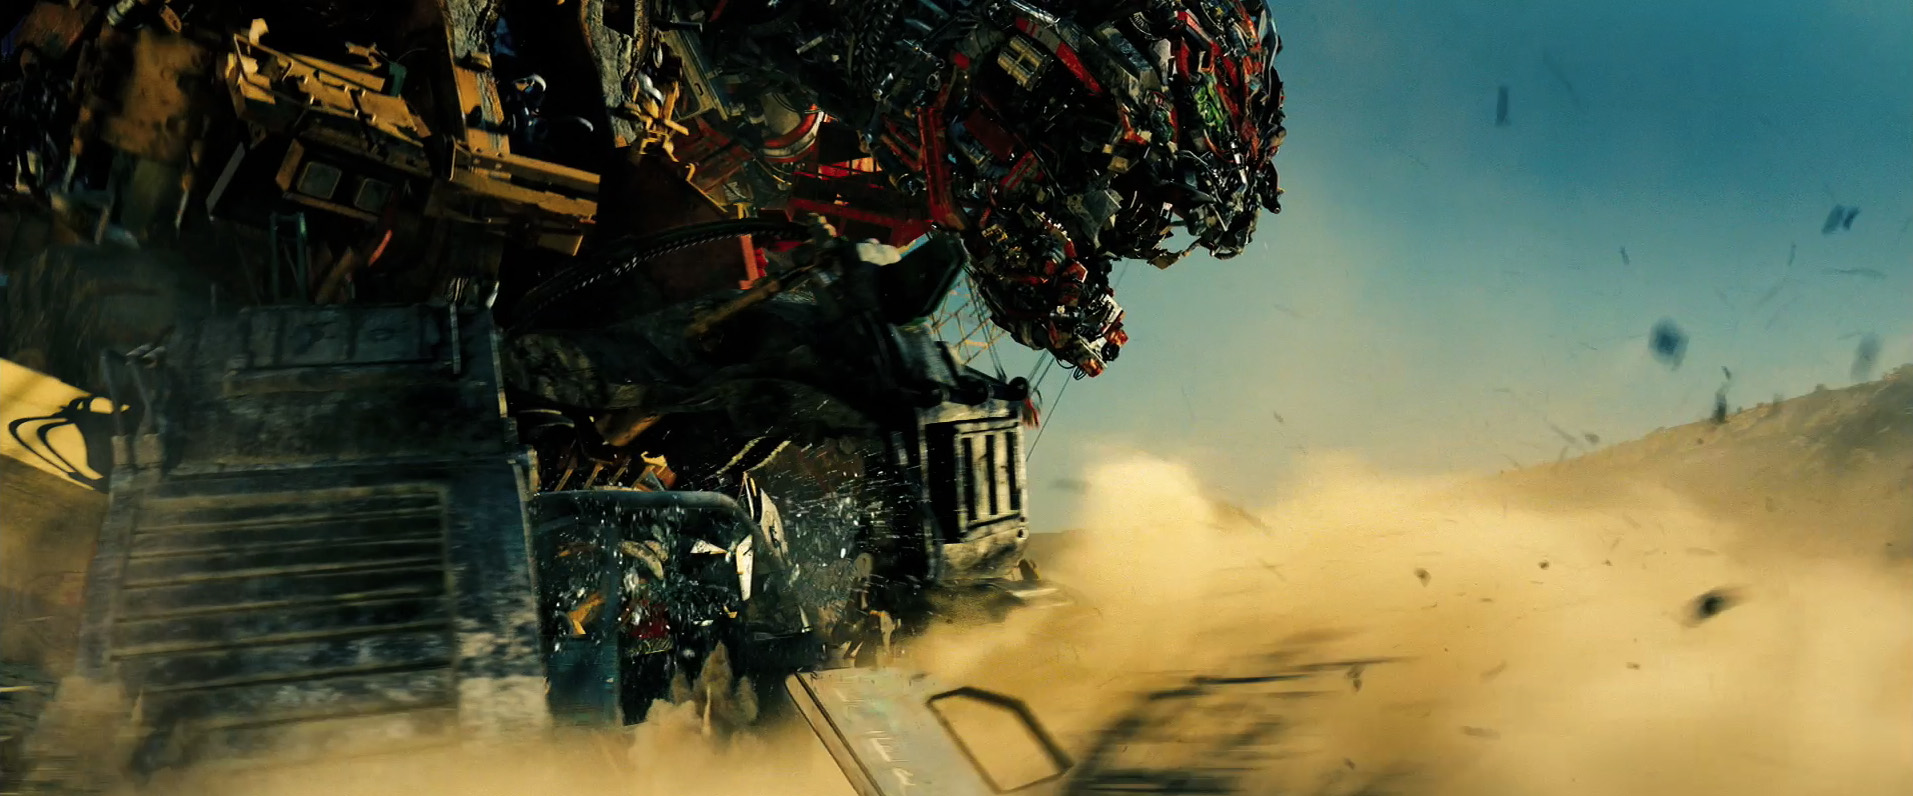 3D PicturesNVIDIA Pictures of devastator from transformers 2